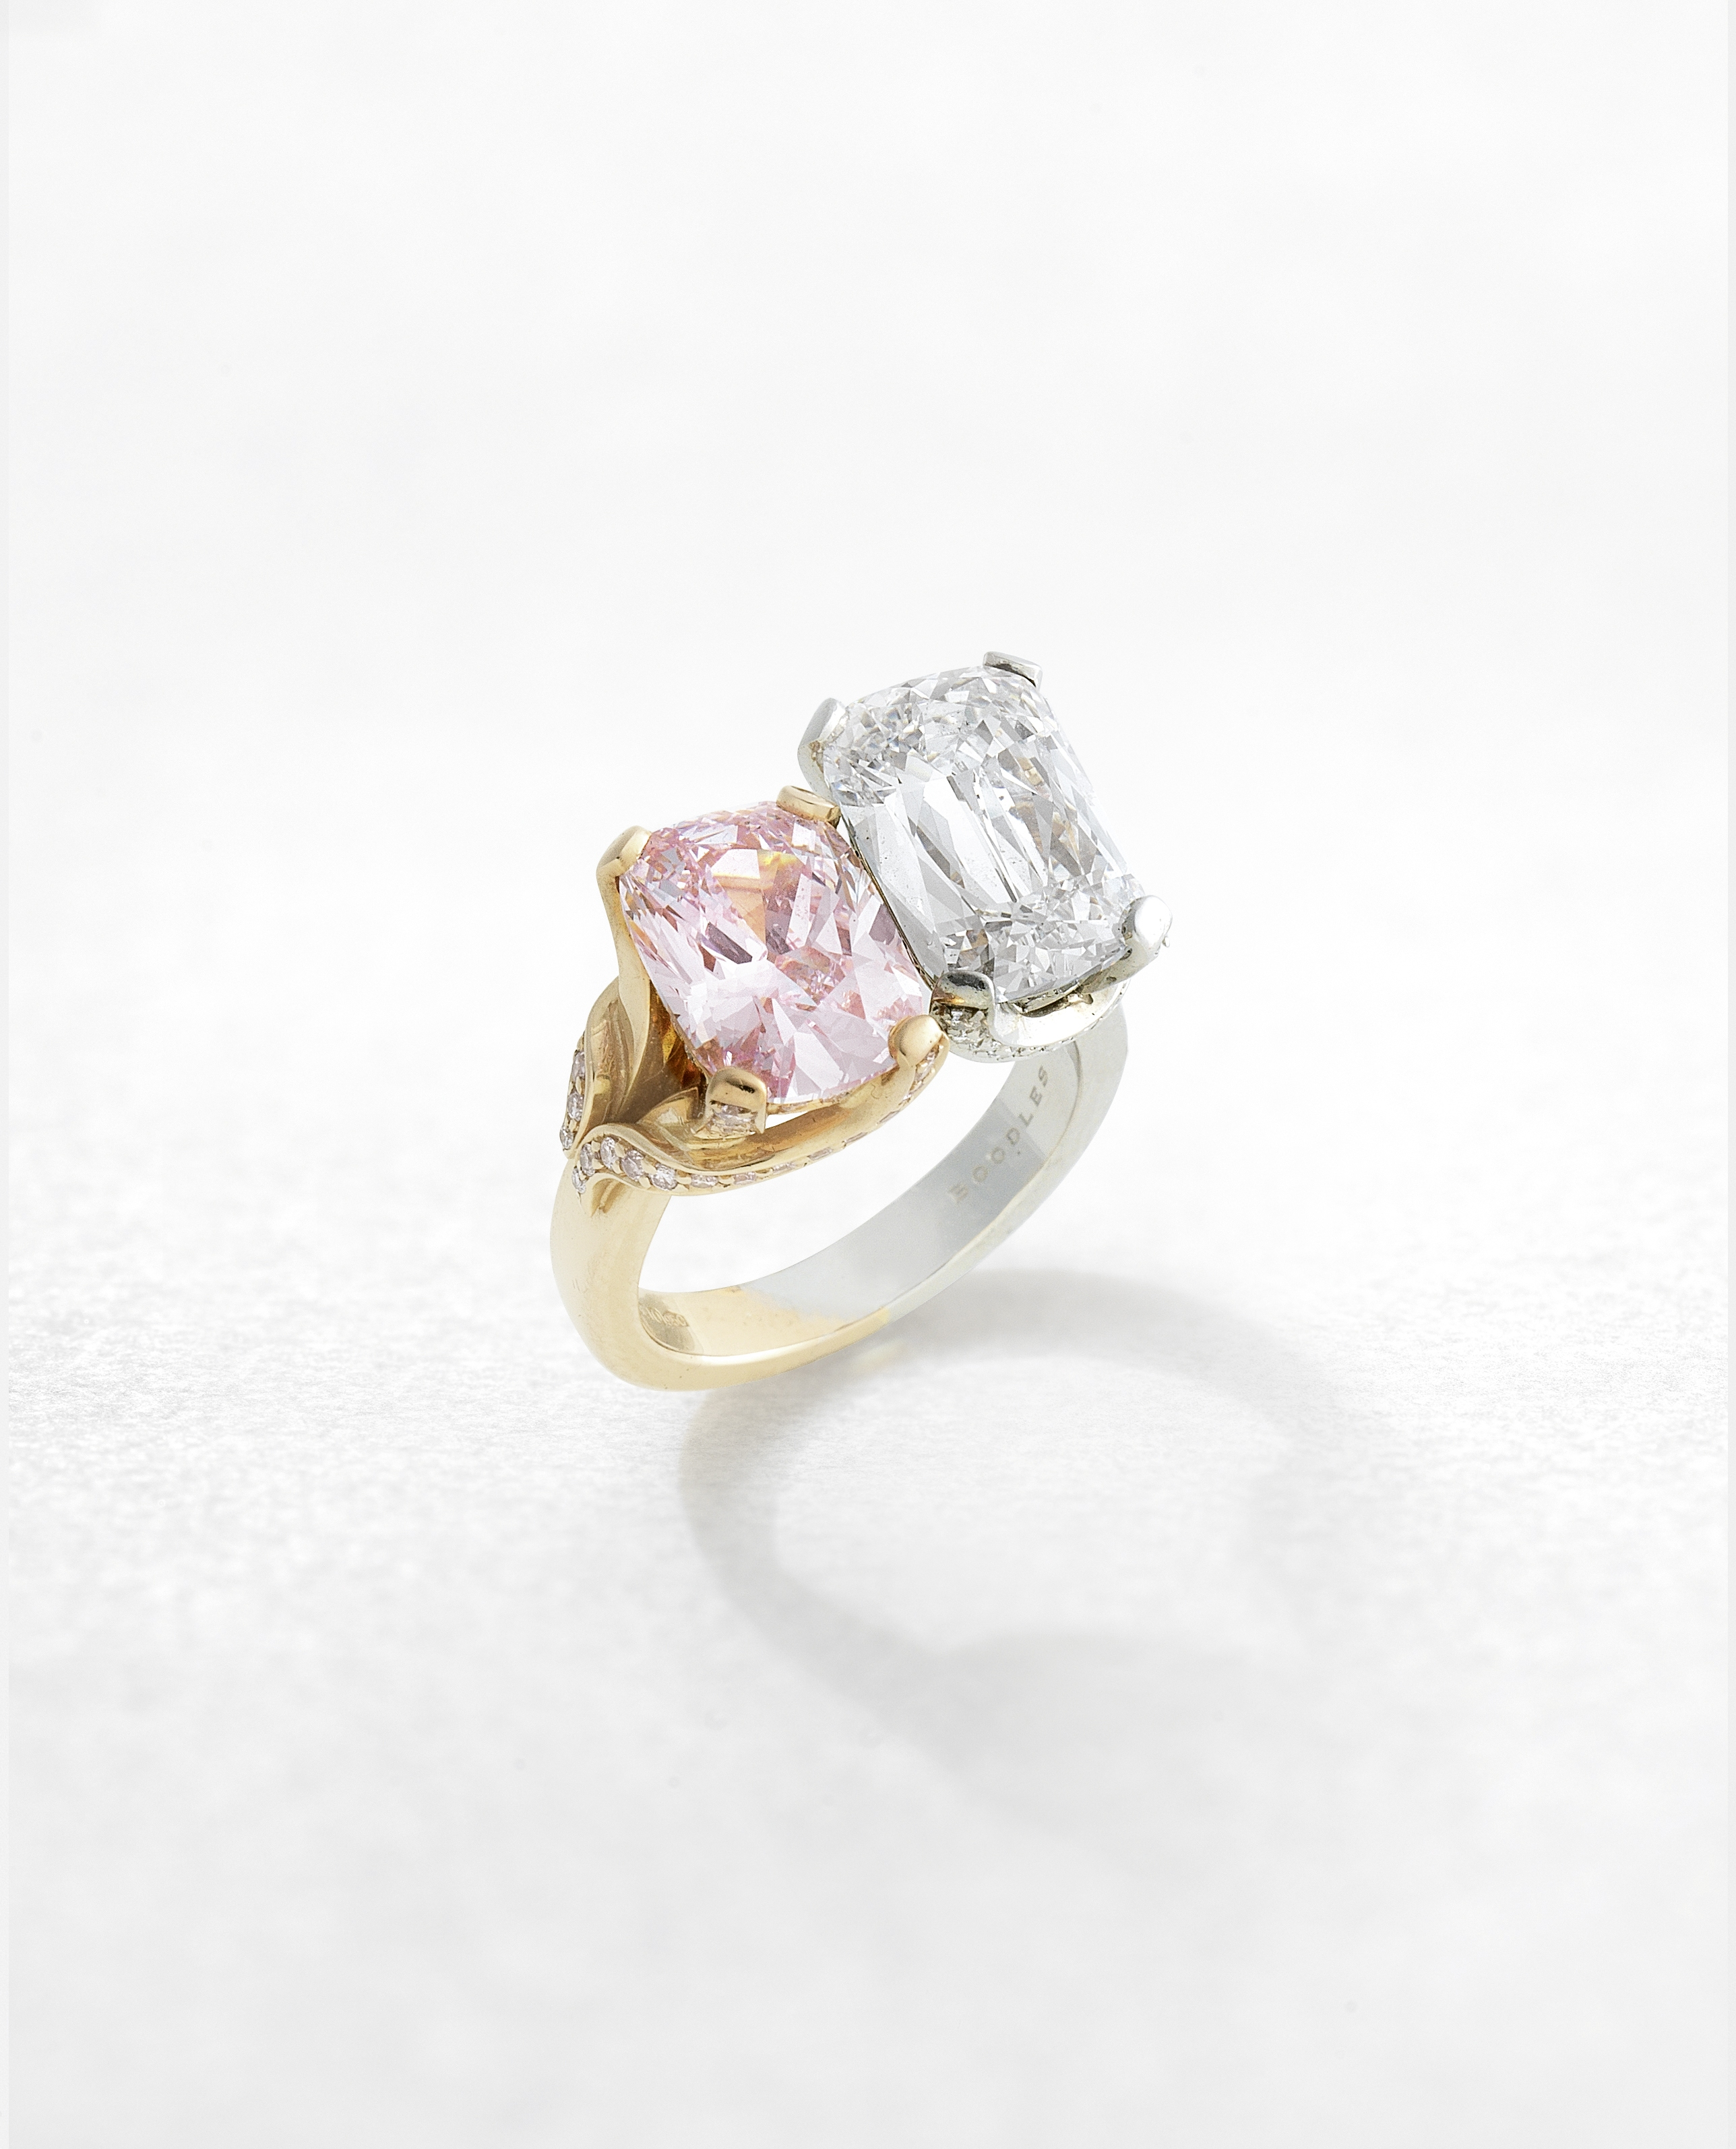 BOODLES: TWO-STONE FANCY COLOURED DIAMOND AND DIAMOND RING